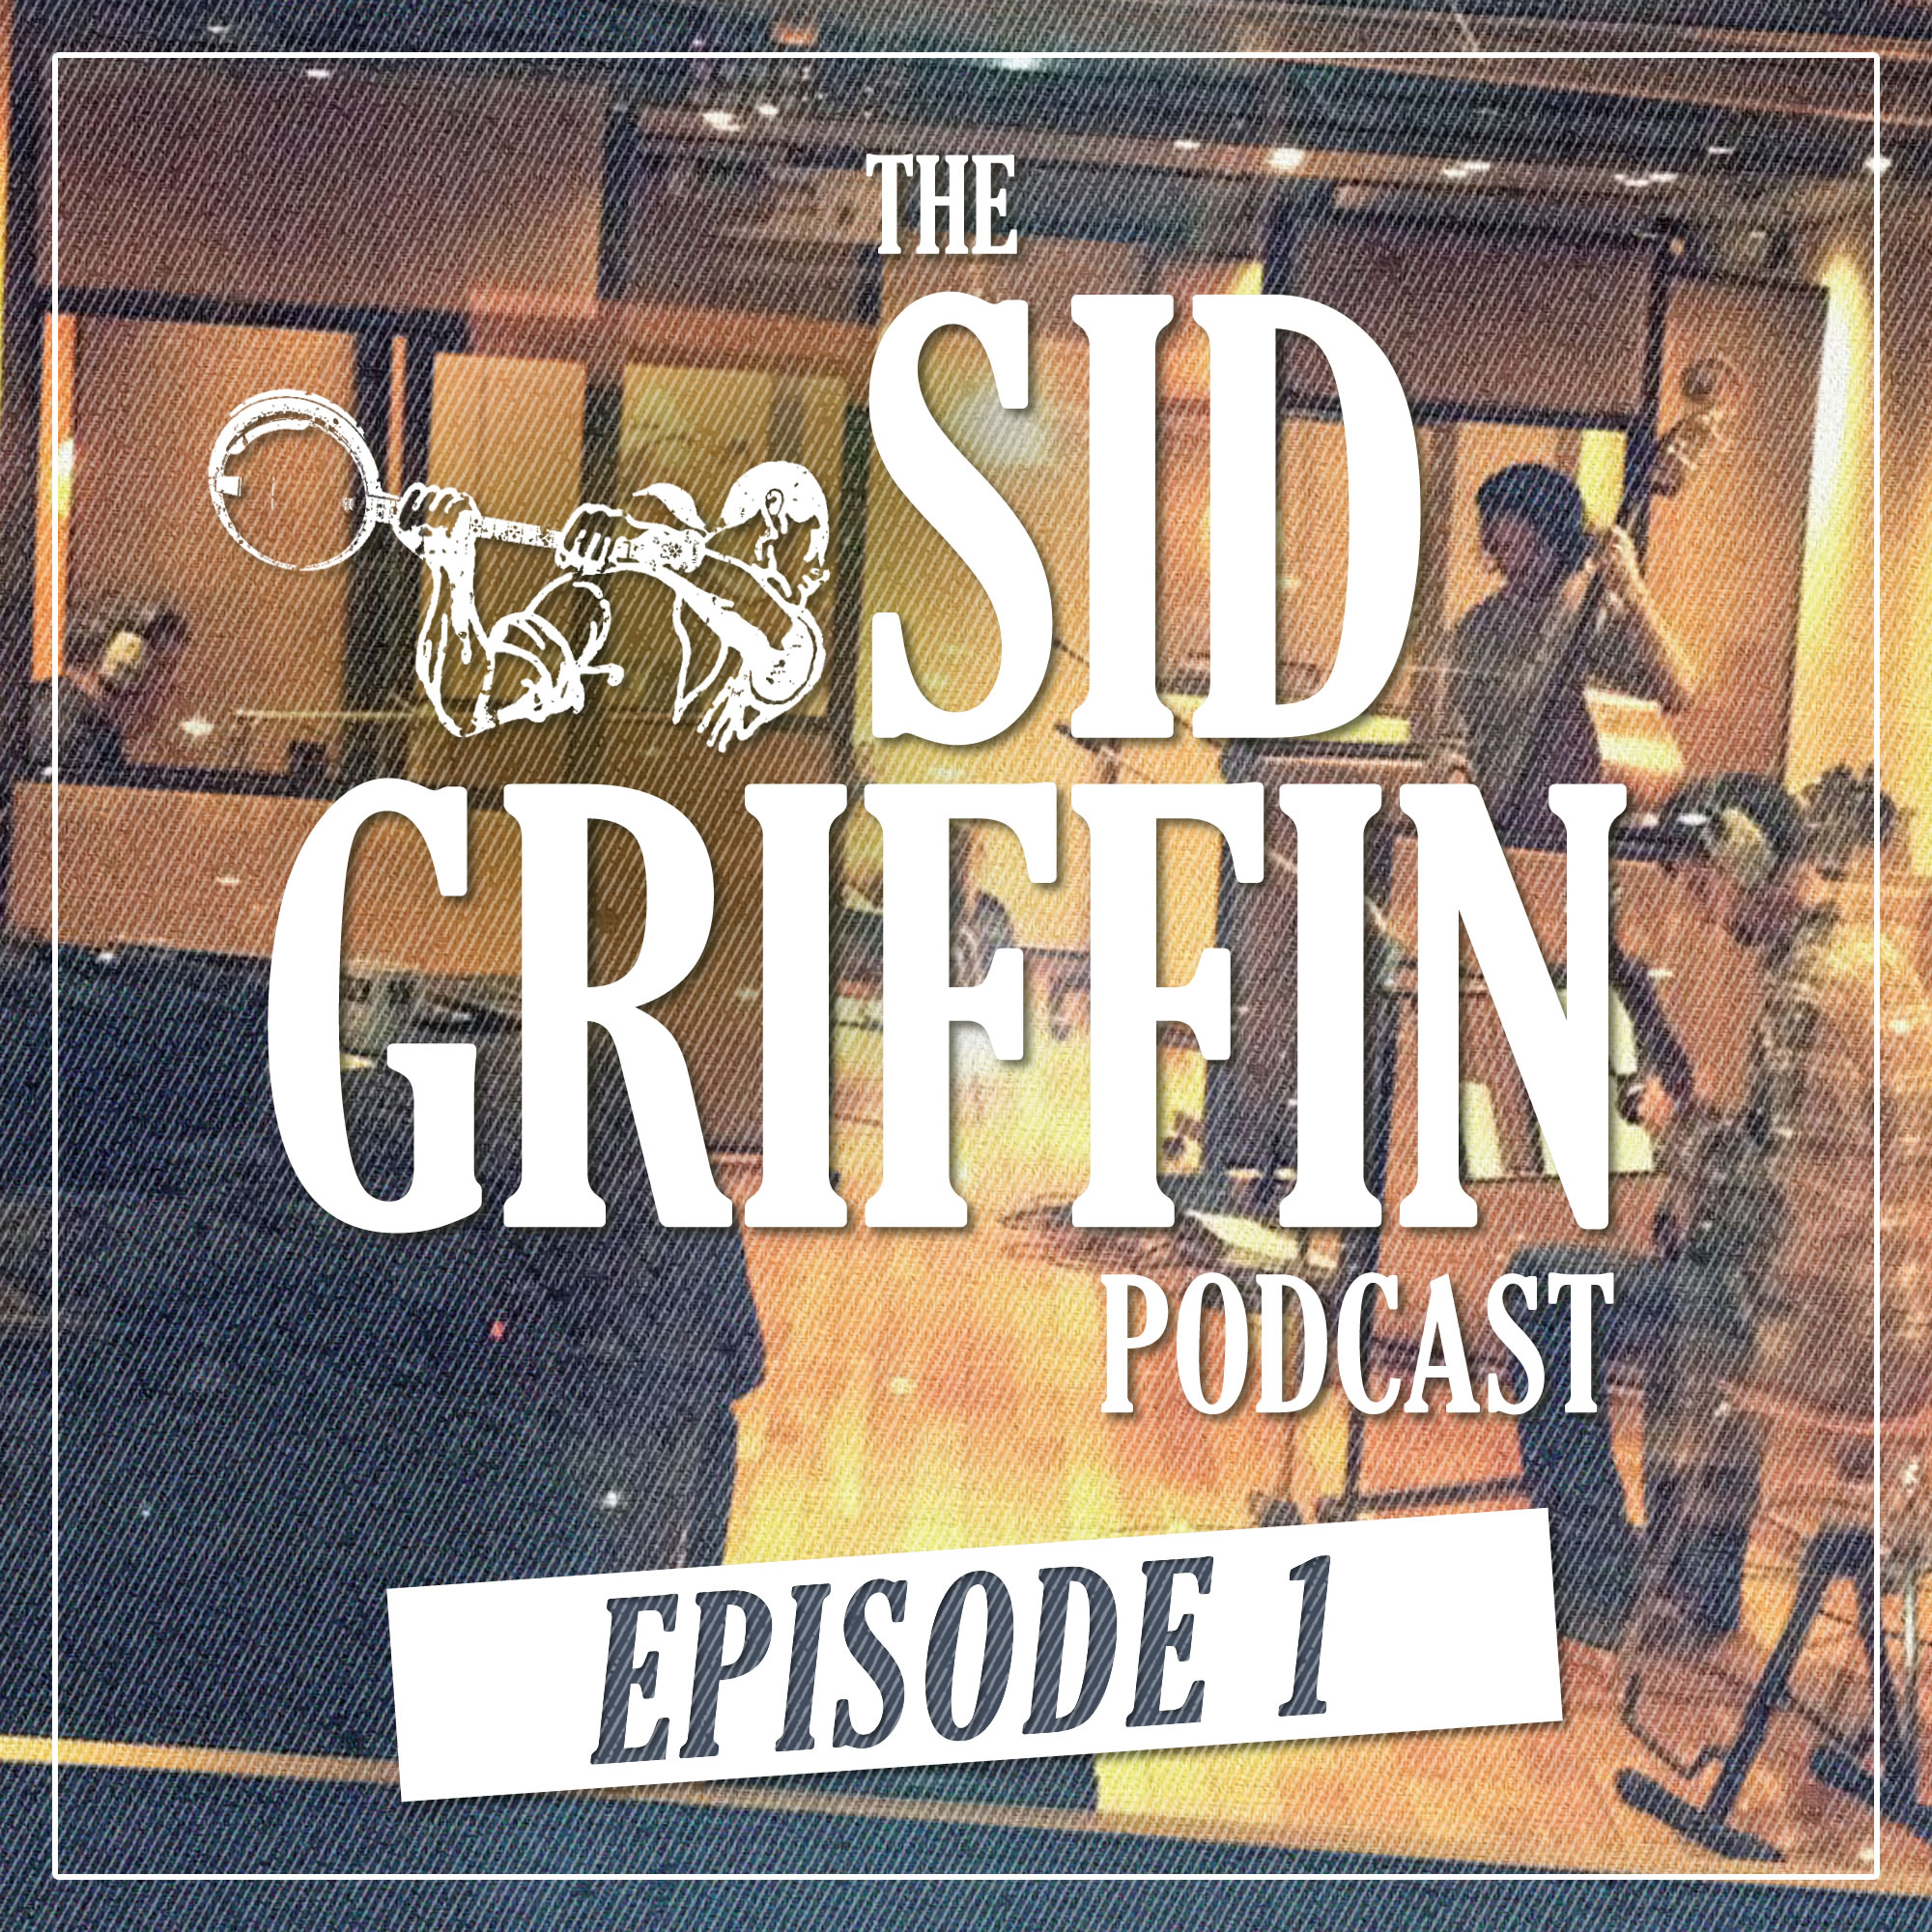 Call All Coal Porters, The Sid Griffin Podcast - No.1